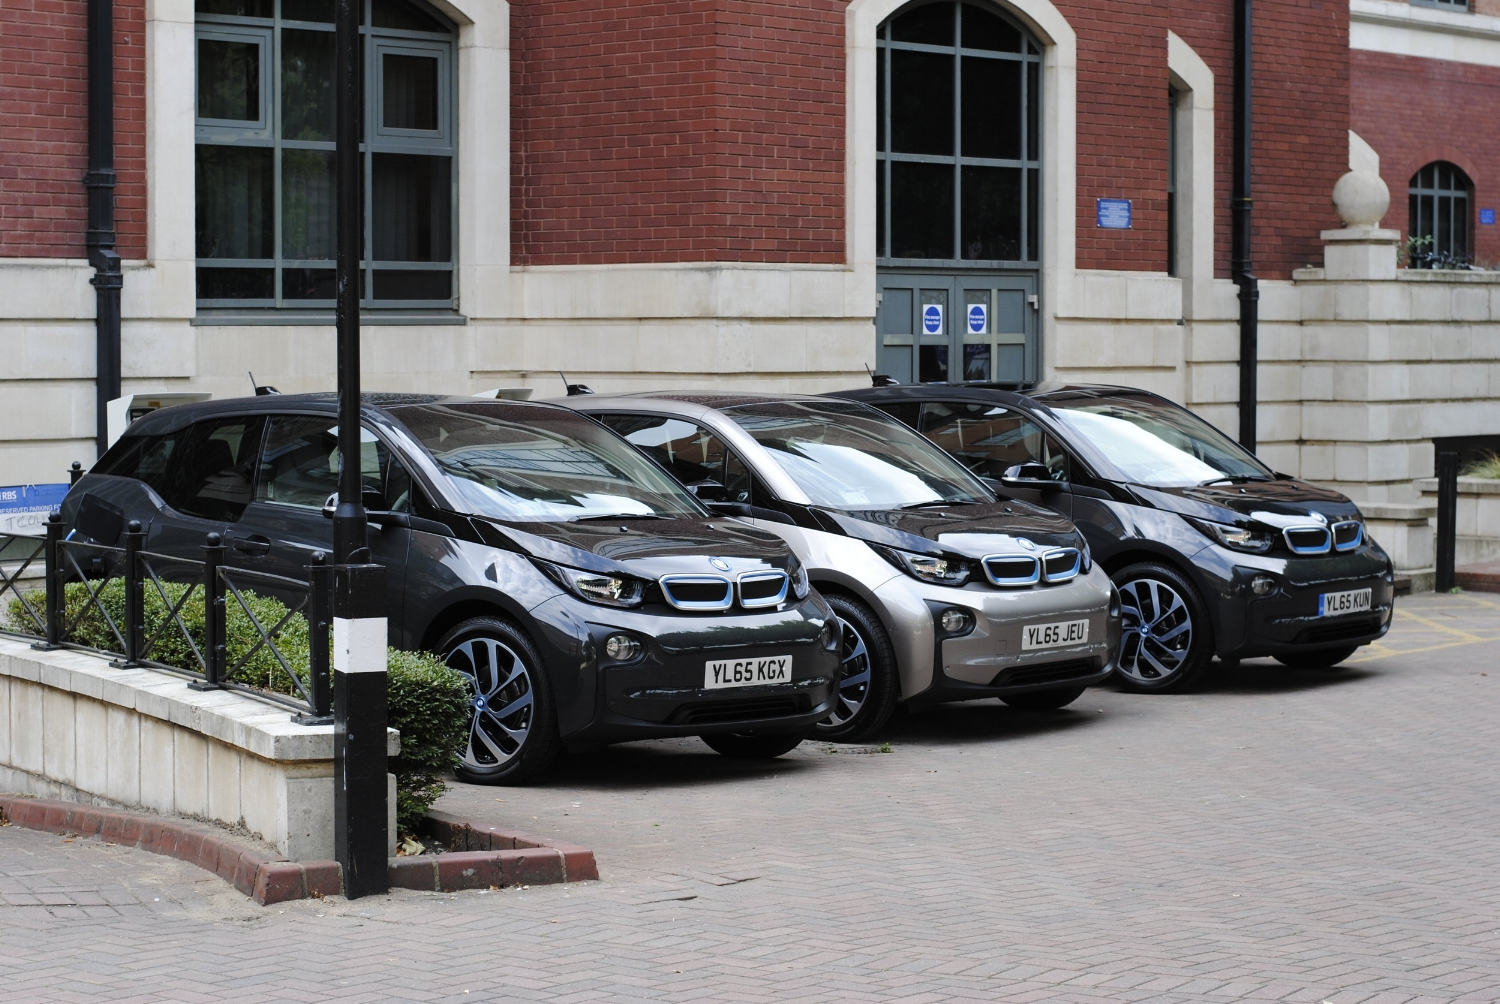 The BMW i3s in the Bristol's RBS office